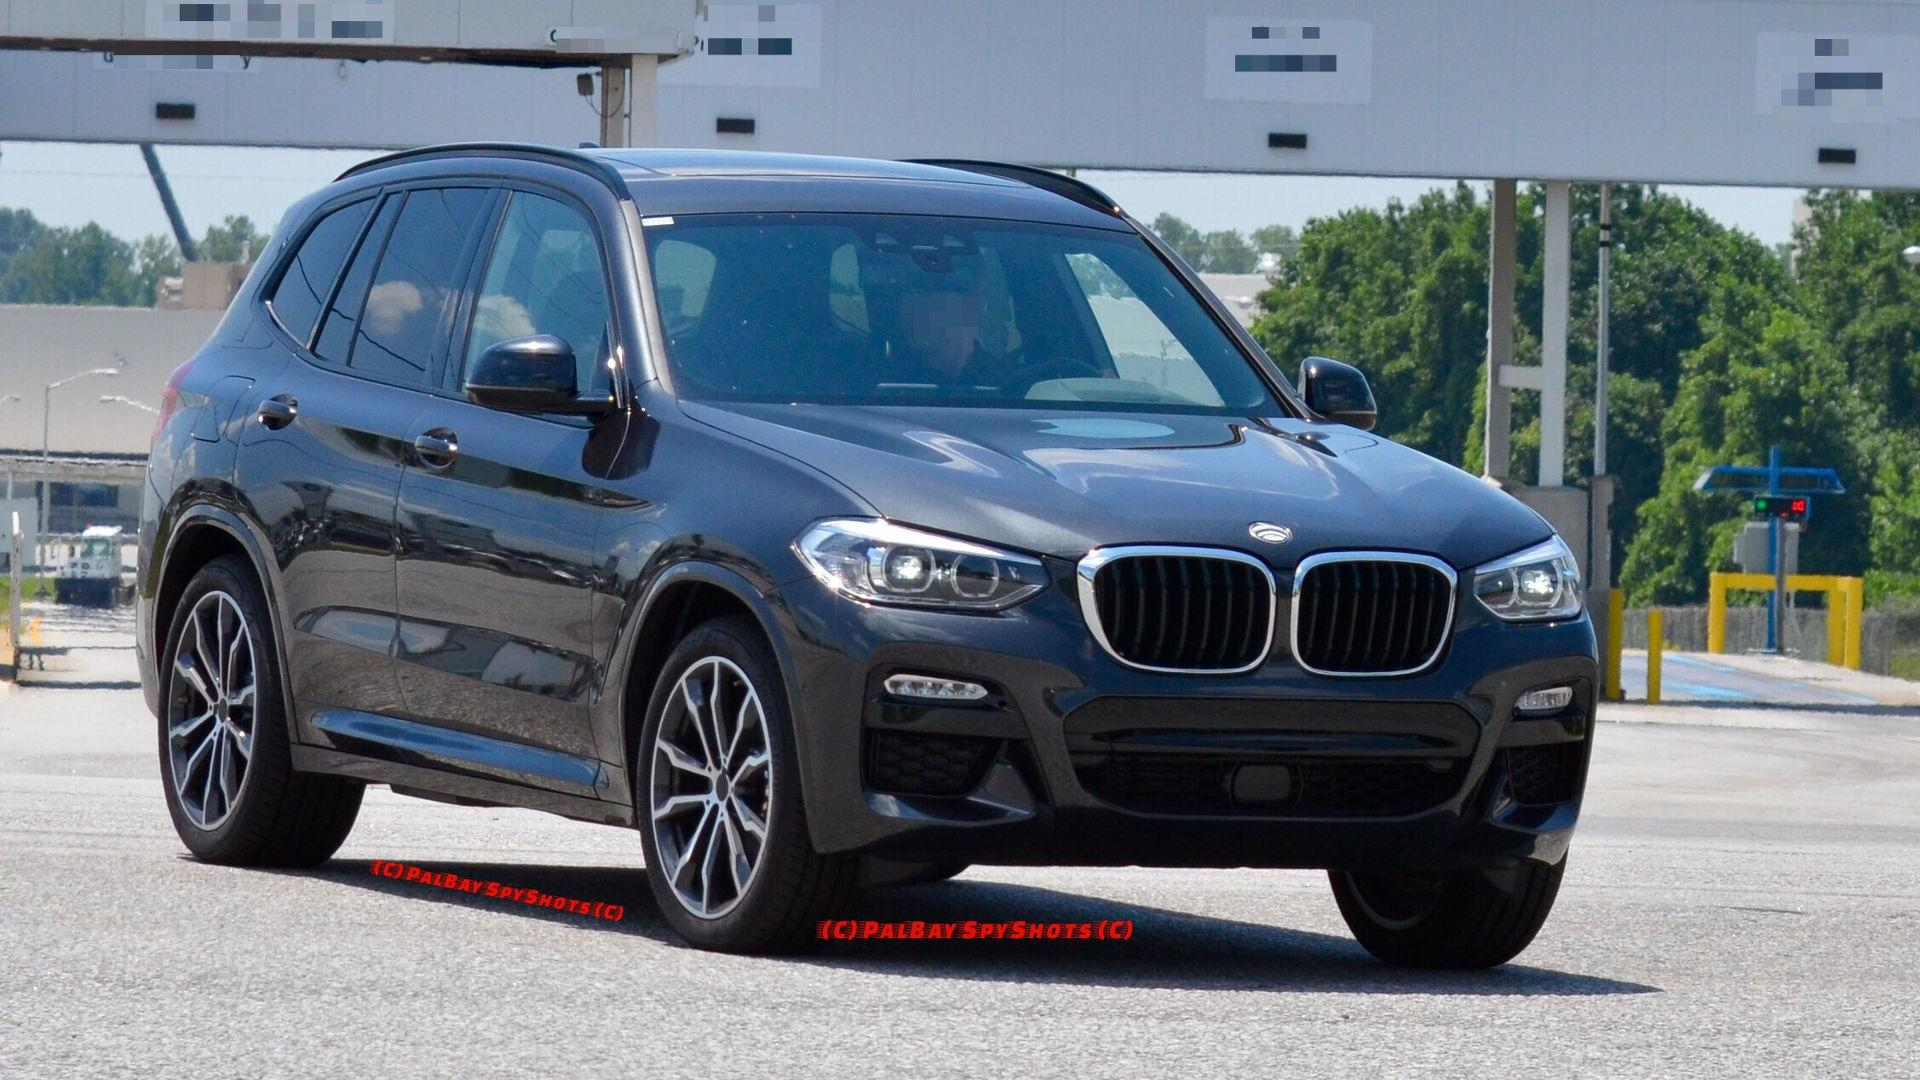 Bmw X3 M Sport >> 2018 Bmw X3 Spied With M Sport Pack In Real World